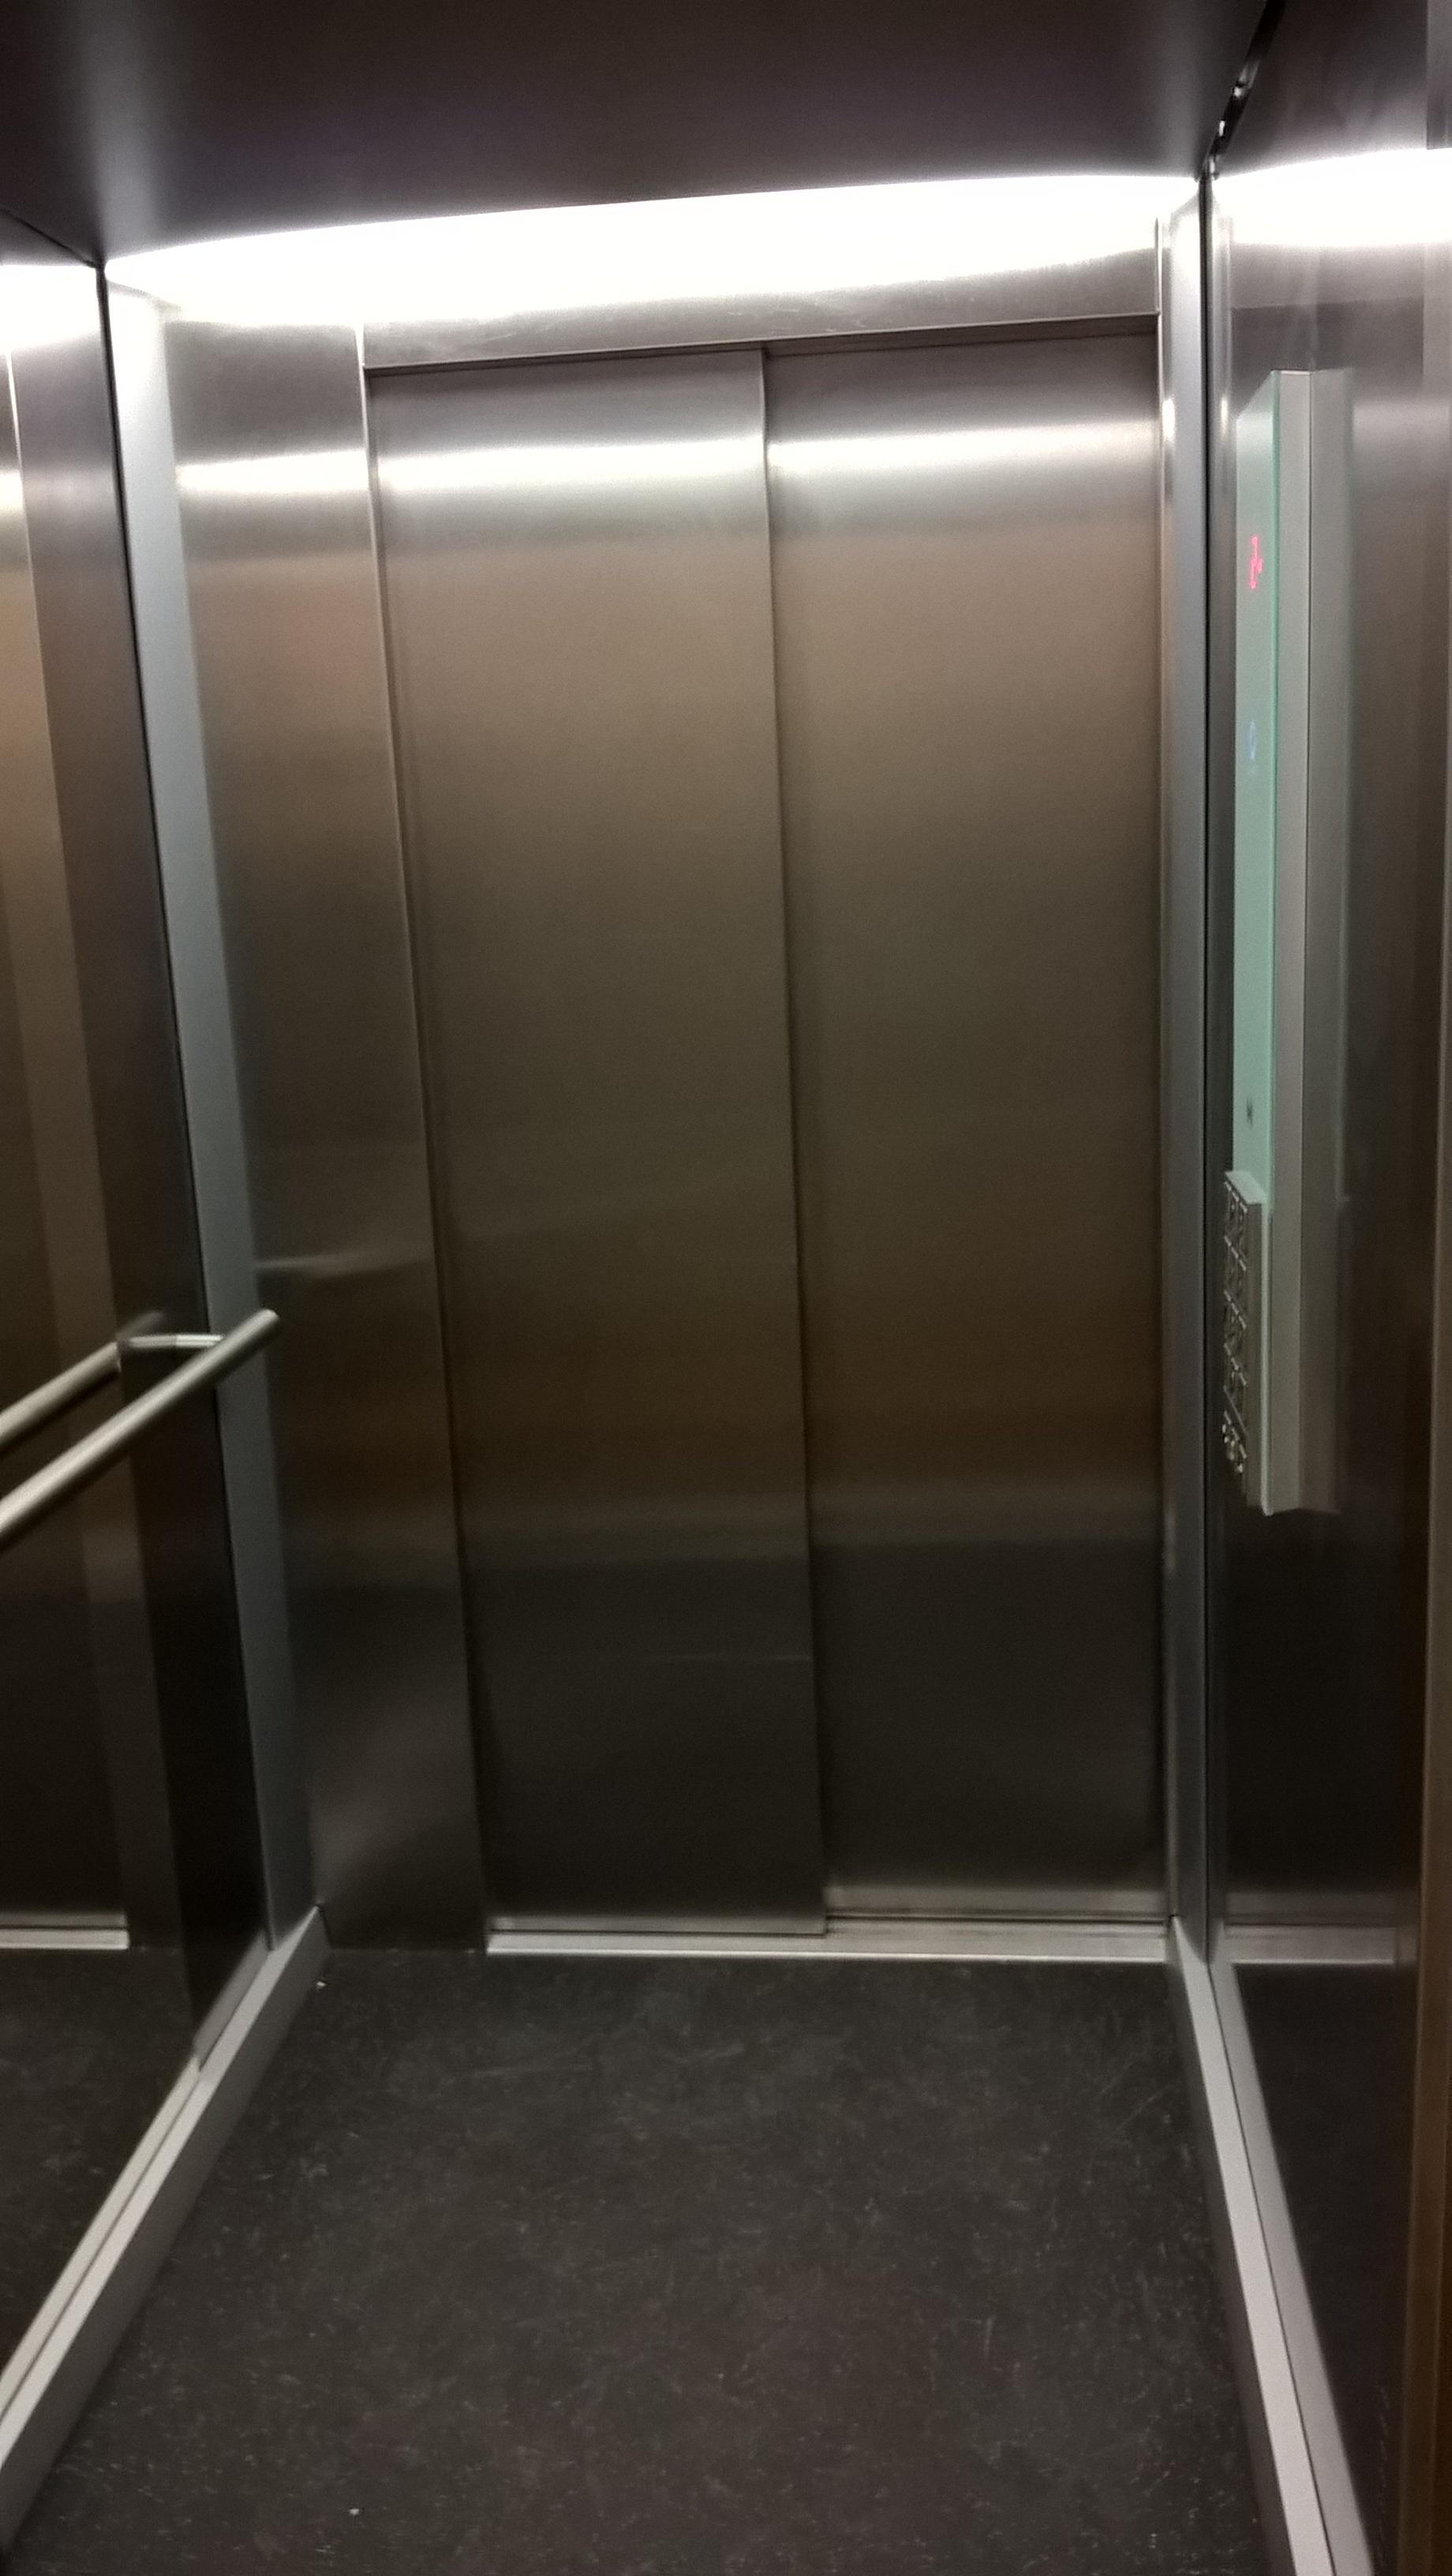 AIRINC's Brussel's Office Elevator